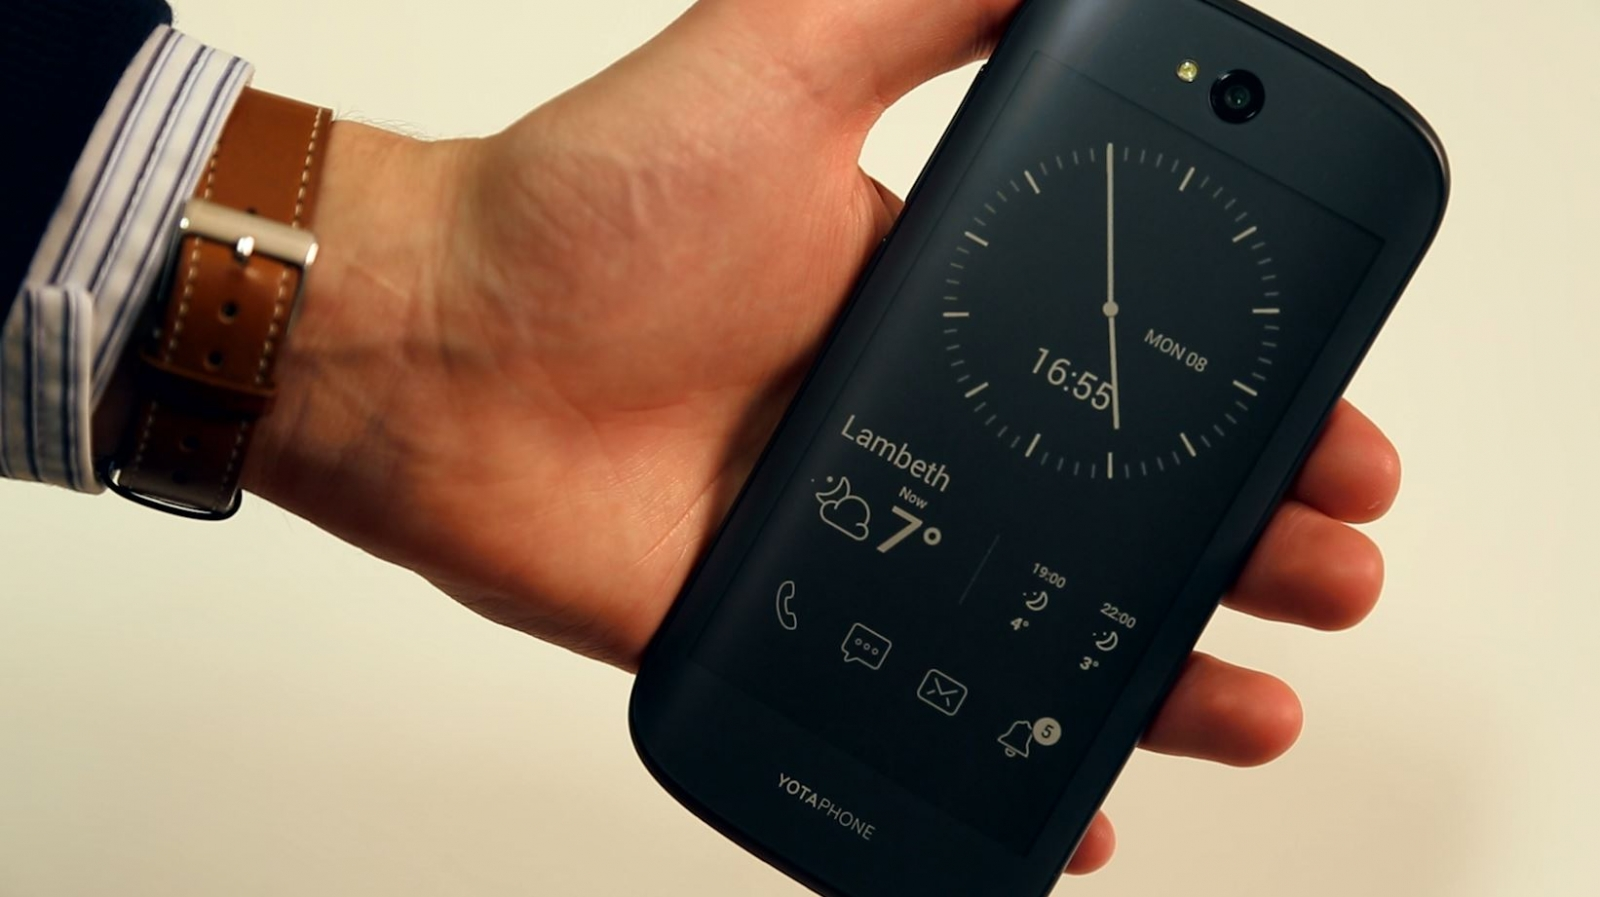 Yotaphone: Are dual-screened smartphones the future?